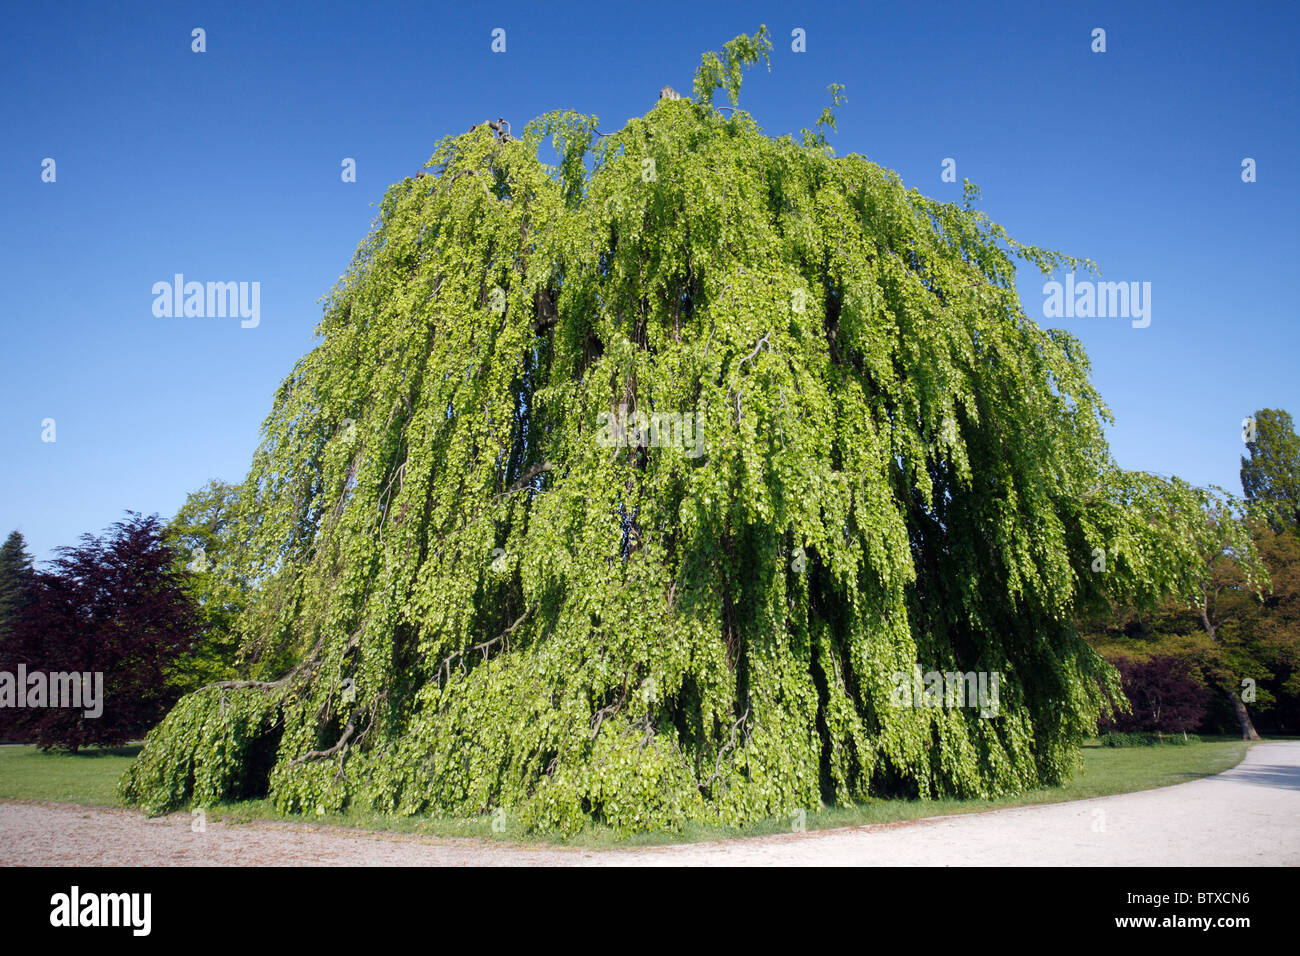 Beech Tree (Fagus sylvatica), weeping or pendula form, in park, Germany - Stock Image